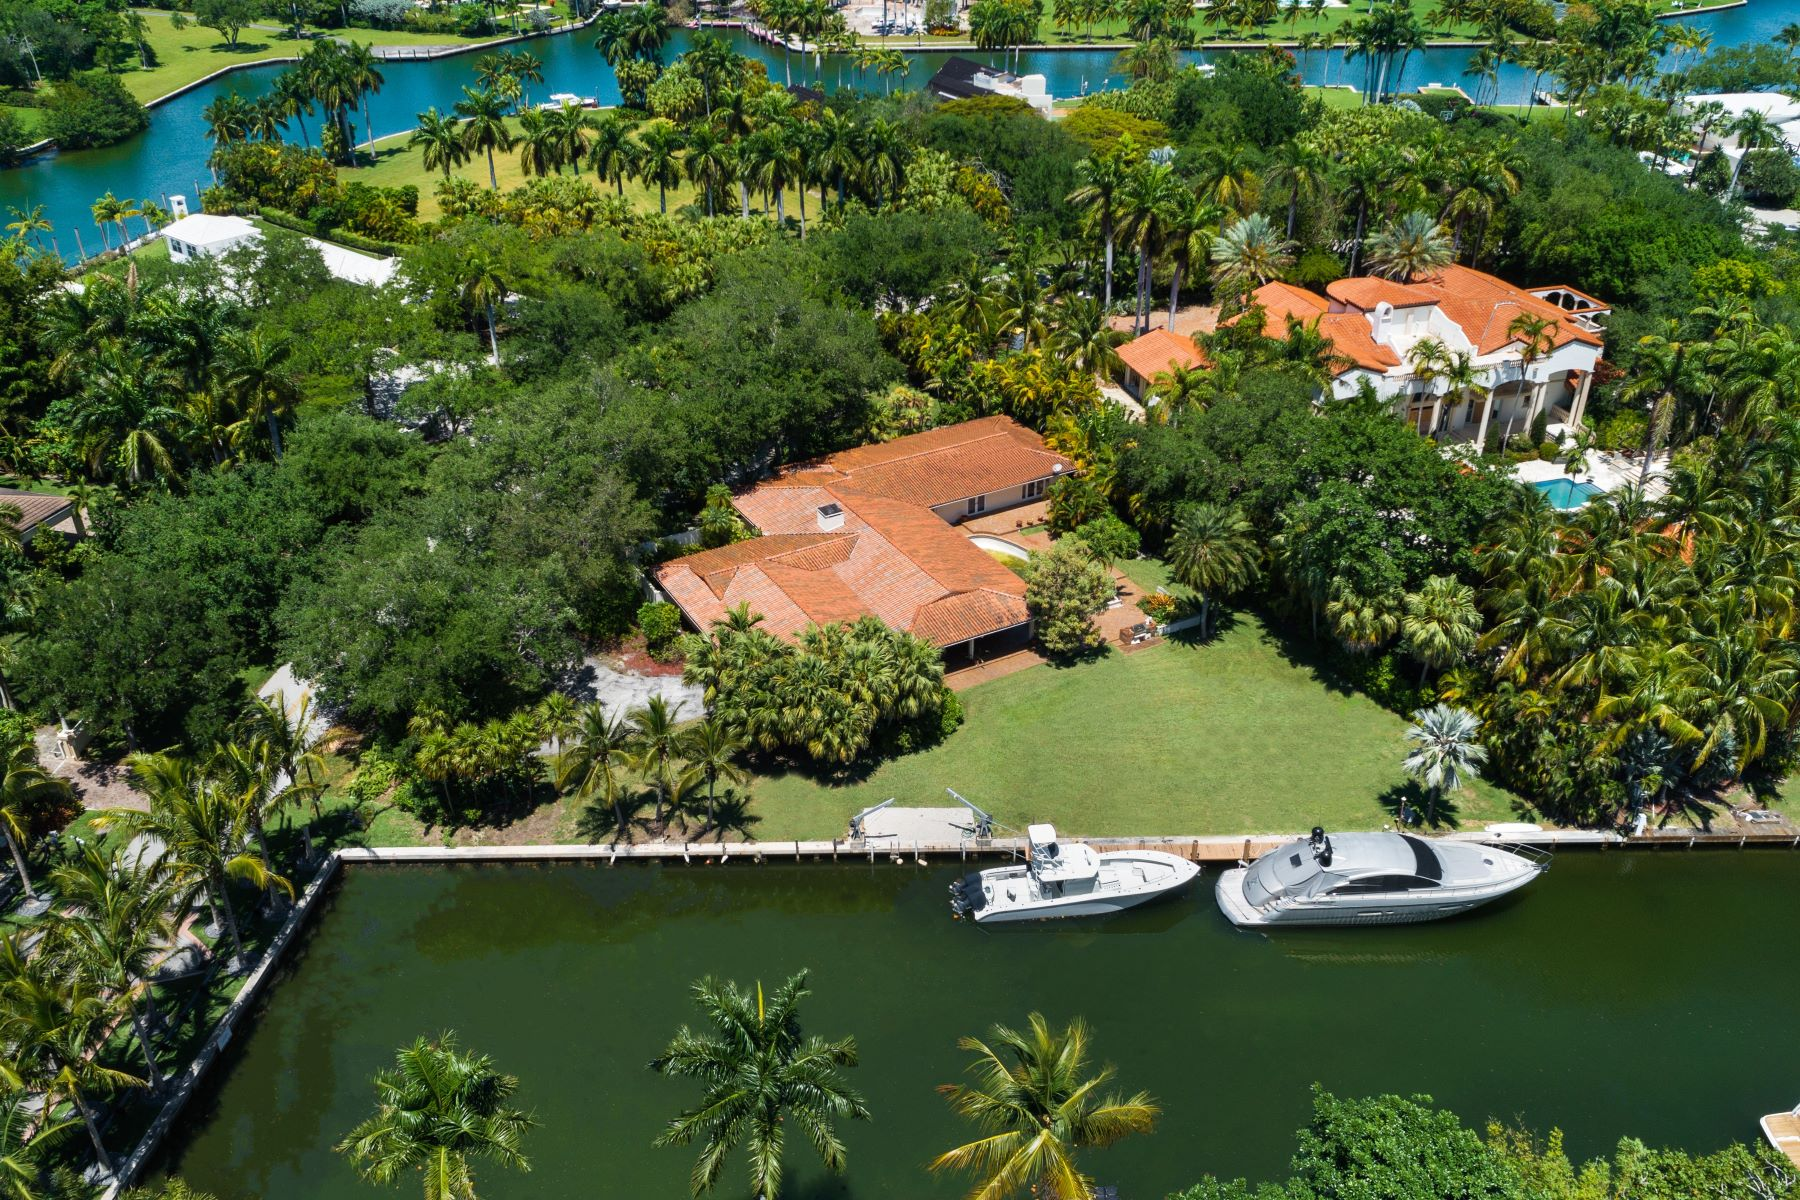 Property for Sale at Coral Gables, Florida 33156 United States